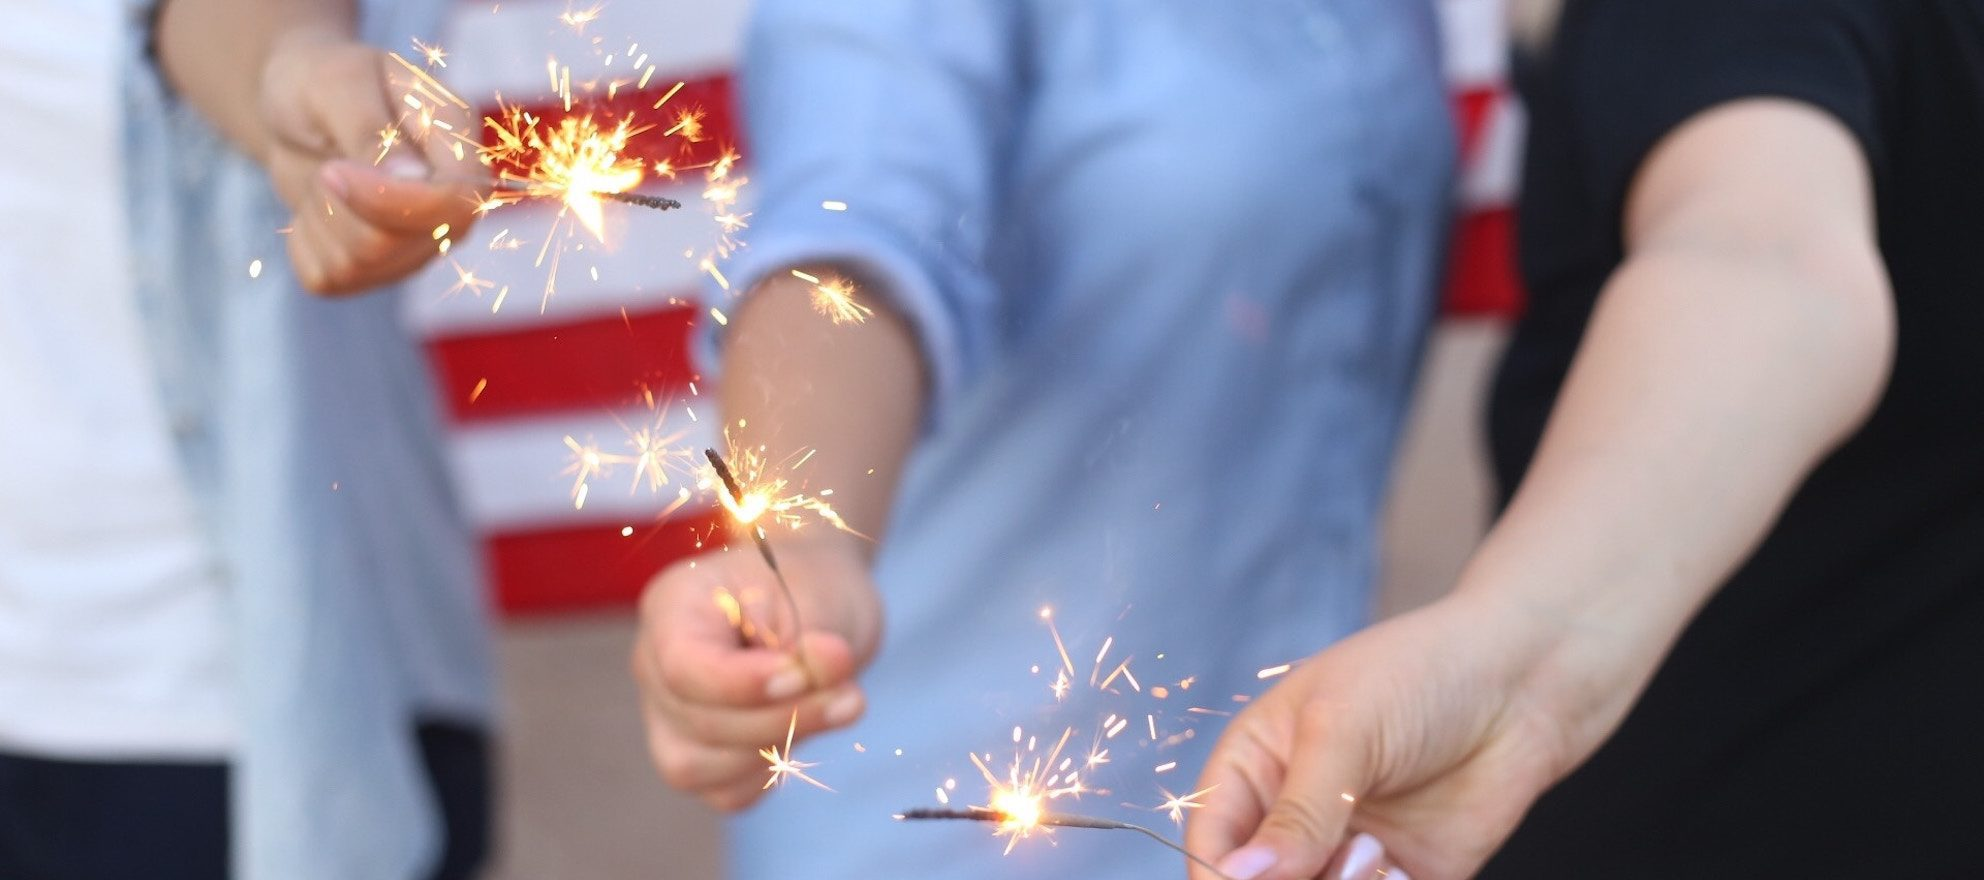 Celebrating patriotic holidays: A primer for agents